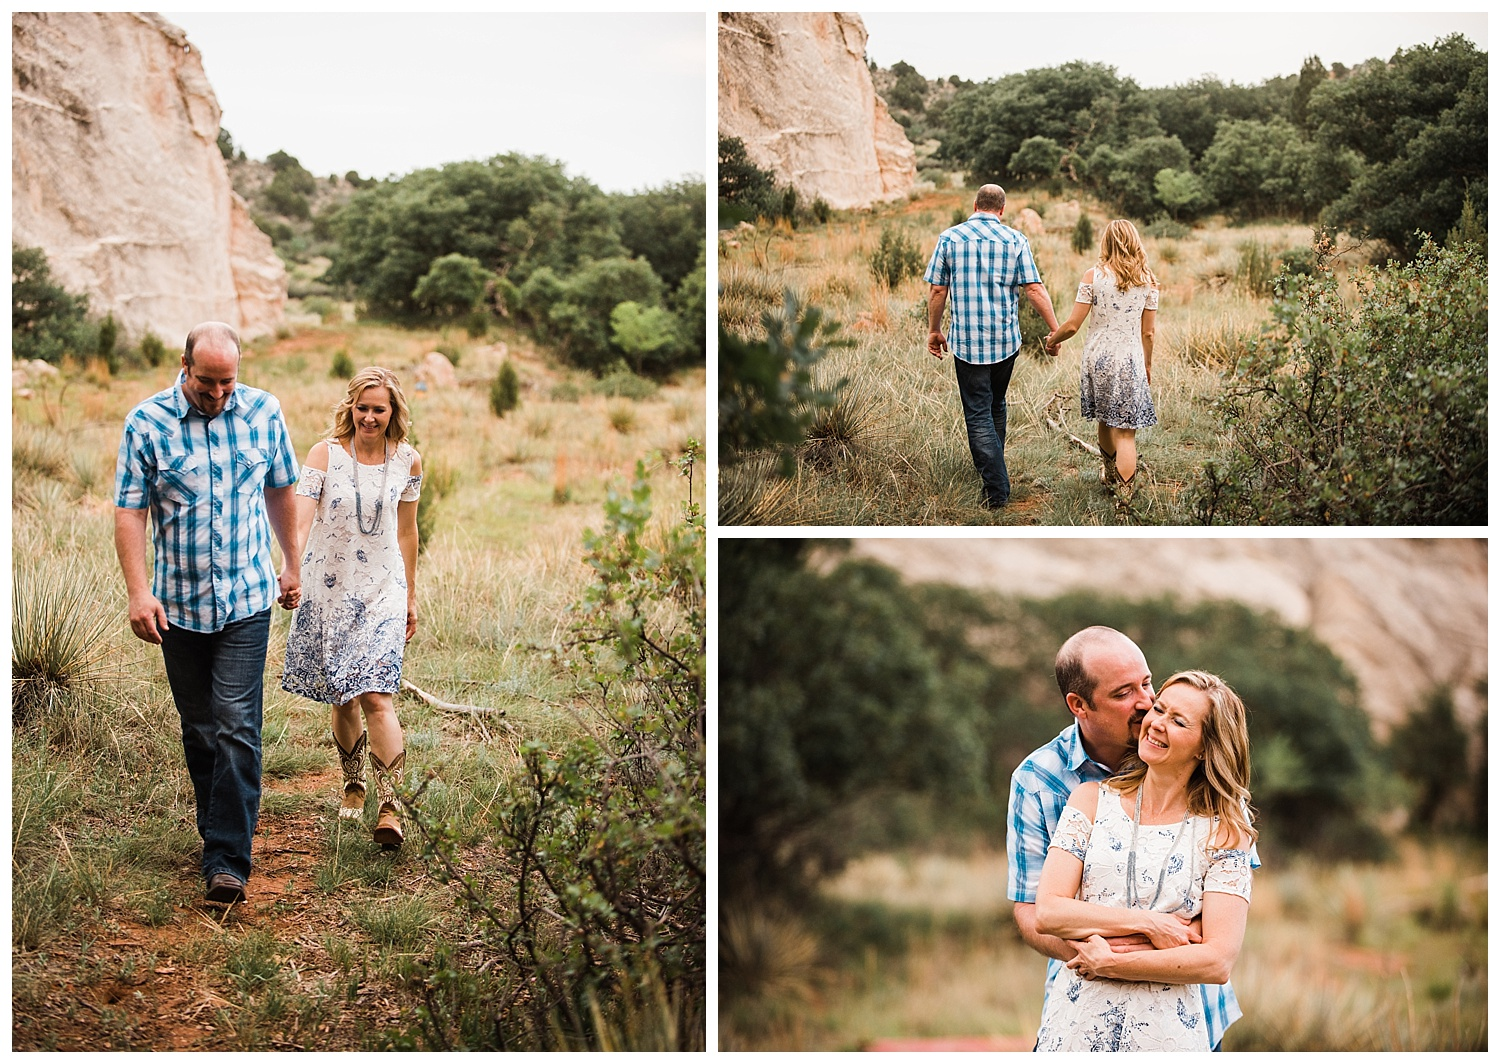 Garden_of_the_Gods_Engagement_Session_Colorado_Springs_Apollo_Fields_06.jpg